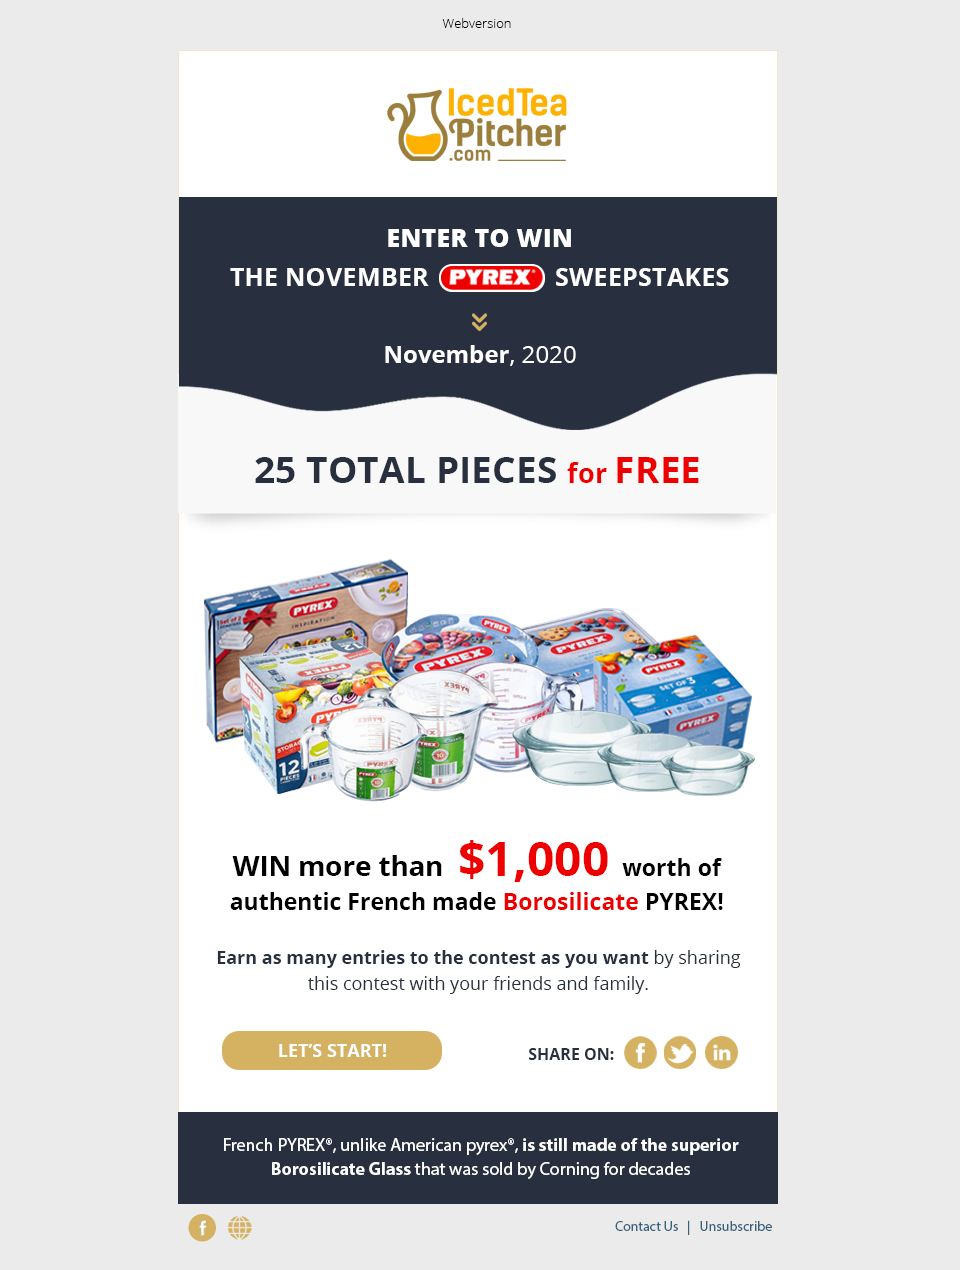 email template   for Give-Away Contest   Design picked in 3 days!